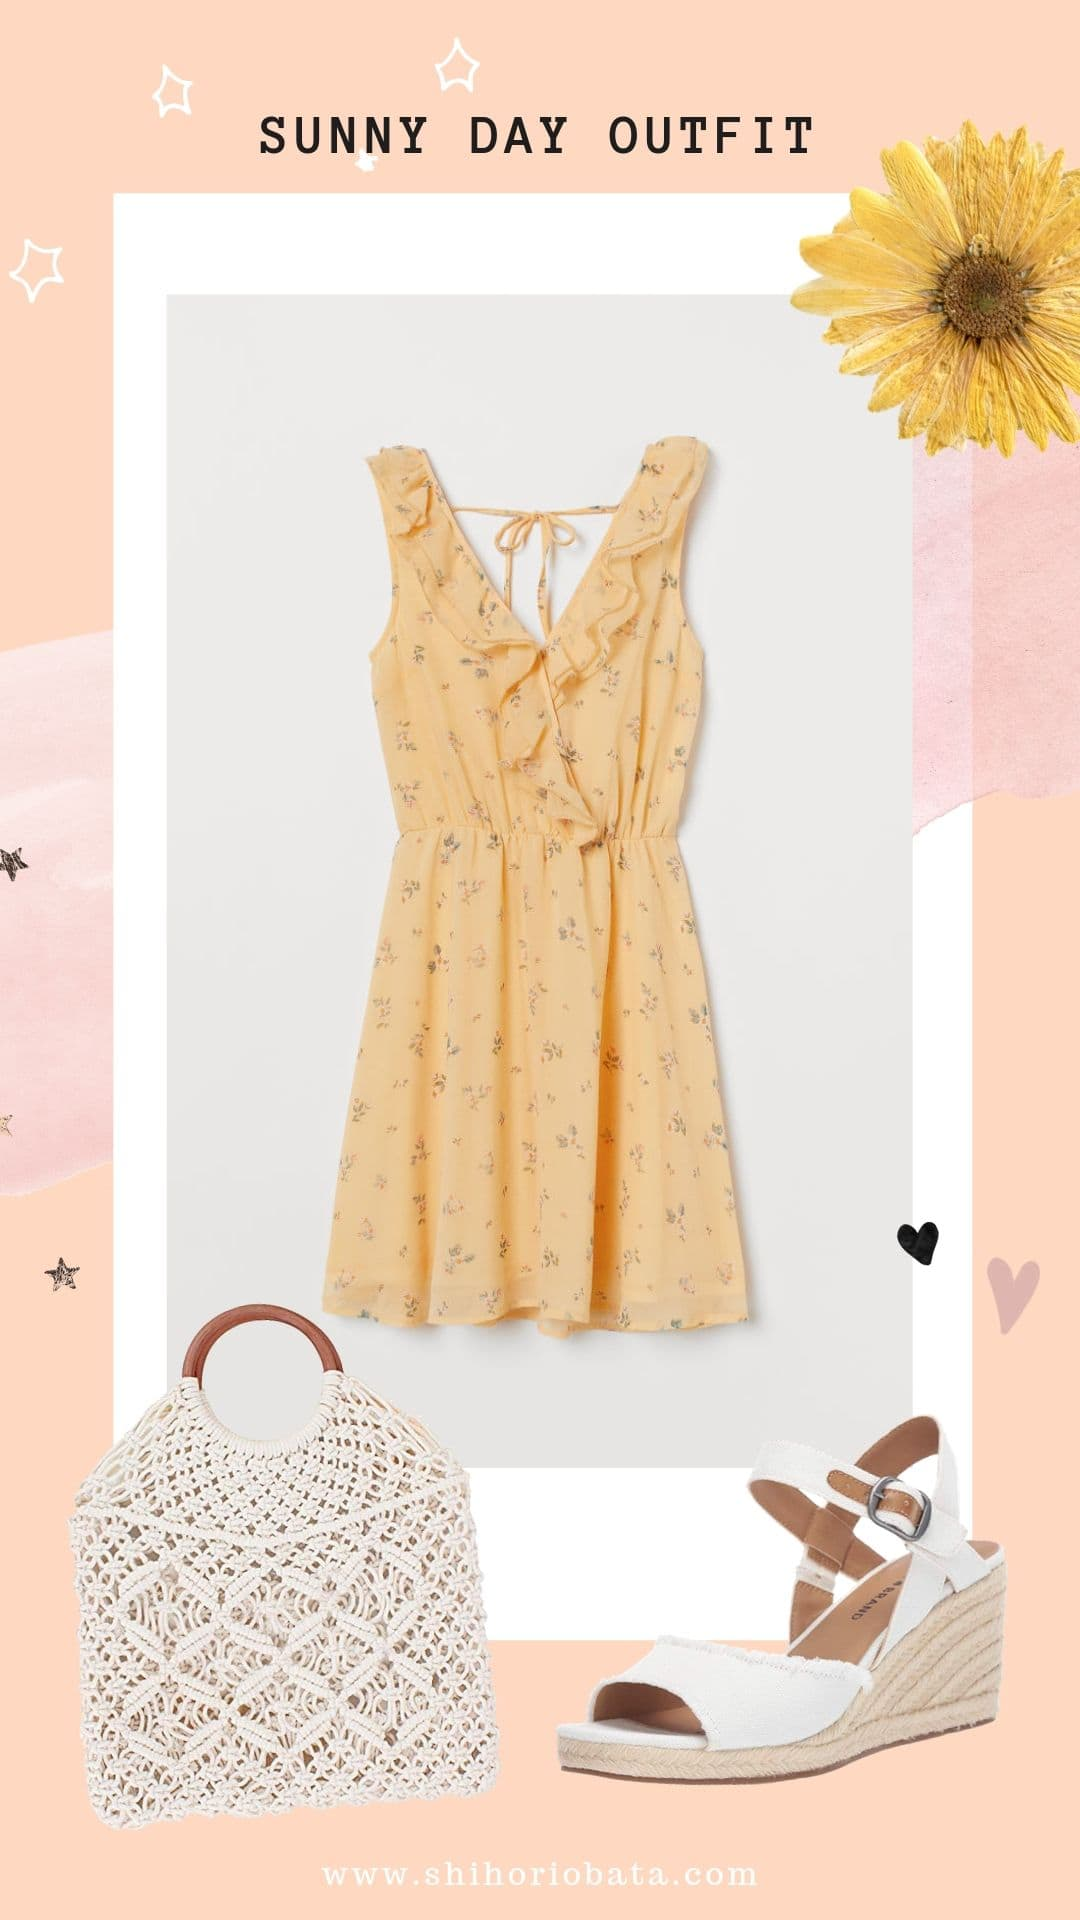 Sunny Day Summer Outfit Ideas